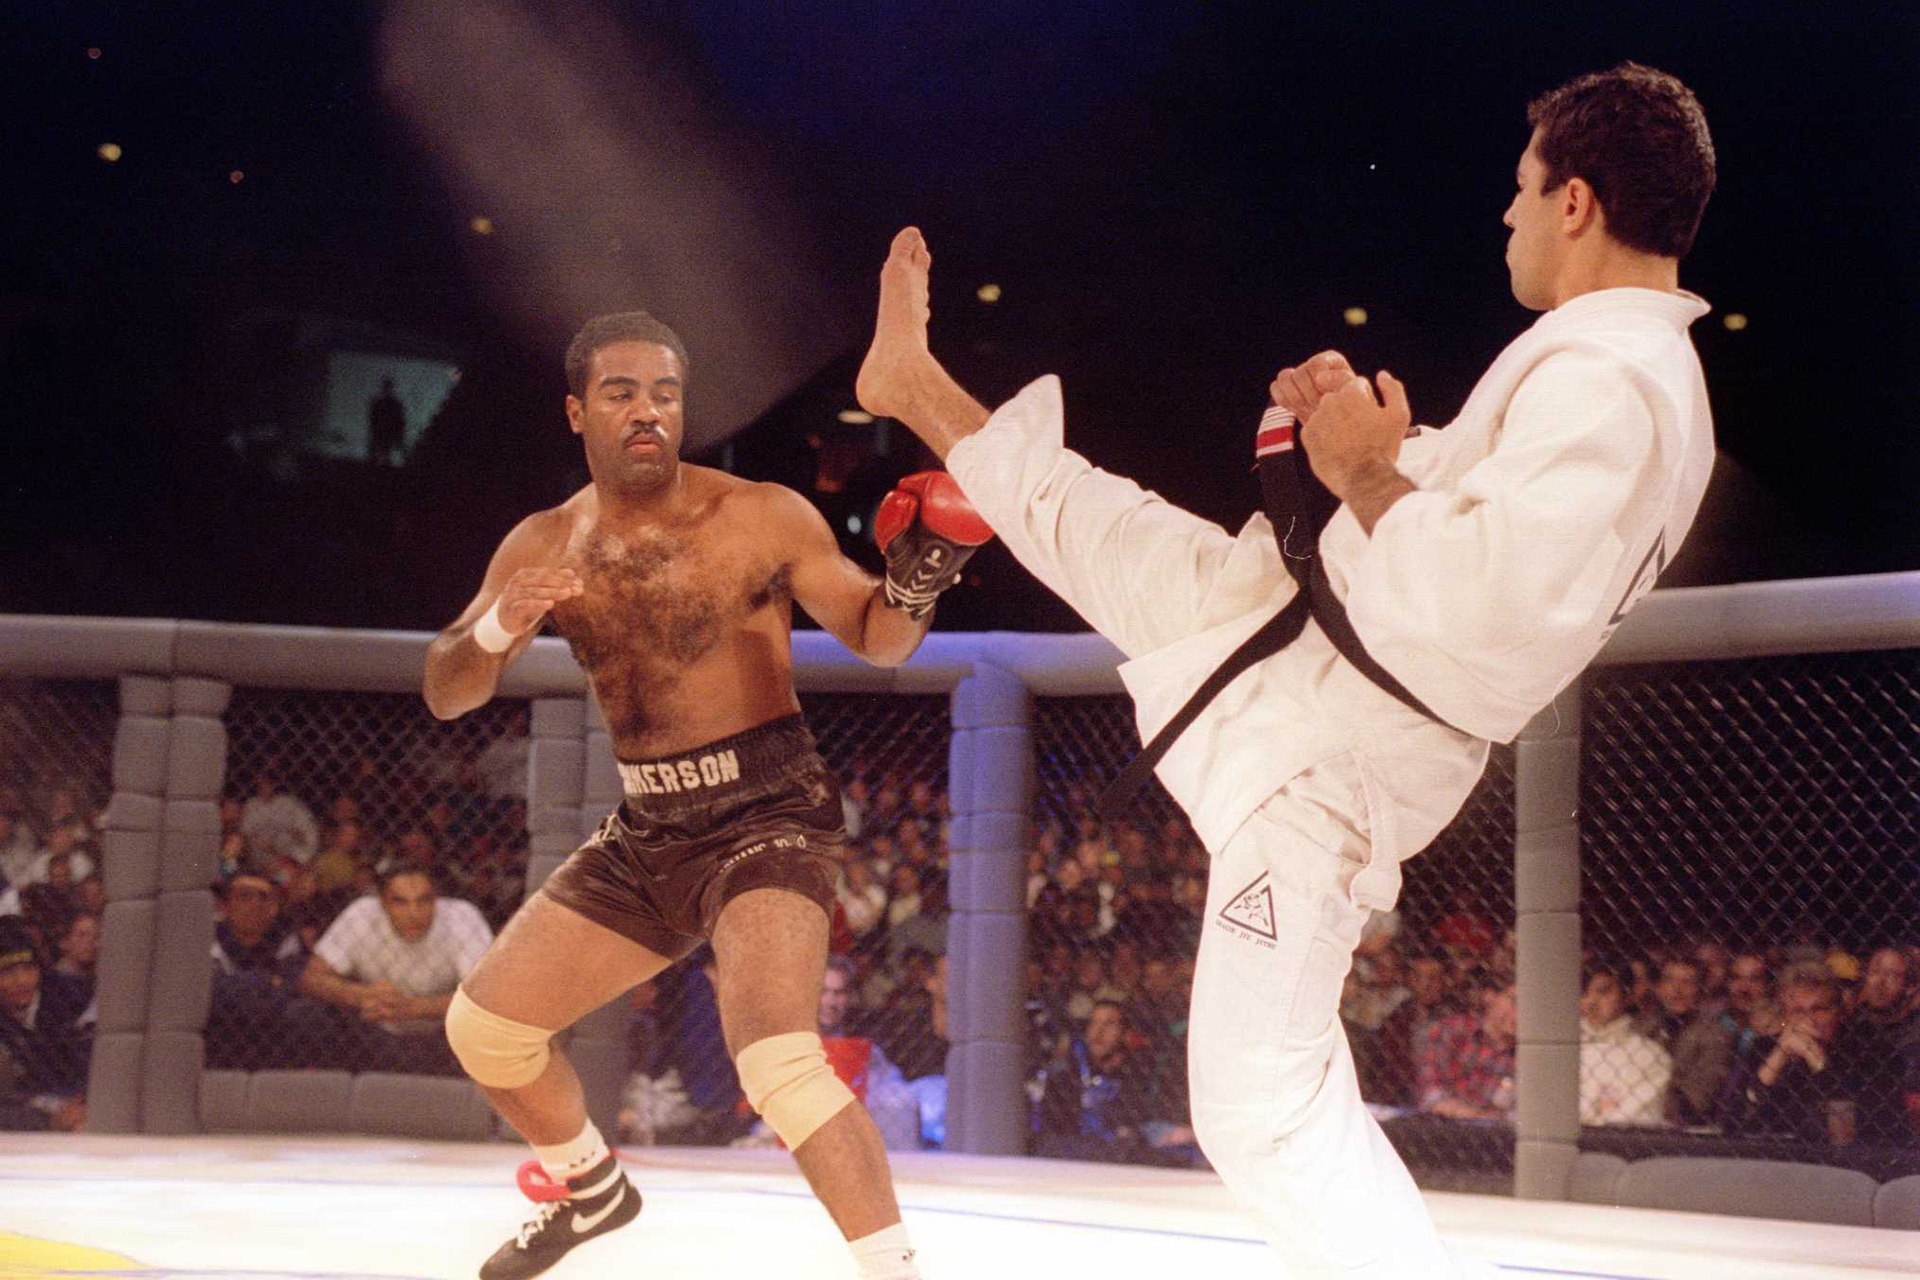 Jiu-Jitsu black belt Royce Gracie kicks at cruiserweight boxer Art Jimmerson during a 1st round match in the Ultimate Fighter Championships in Denver, Colorado. Gracie went on to win the match and eventually the championship. Mandatory Credit: Markus Boes